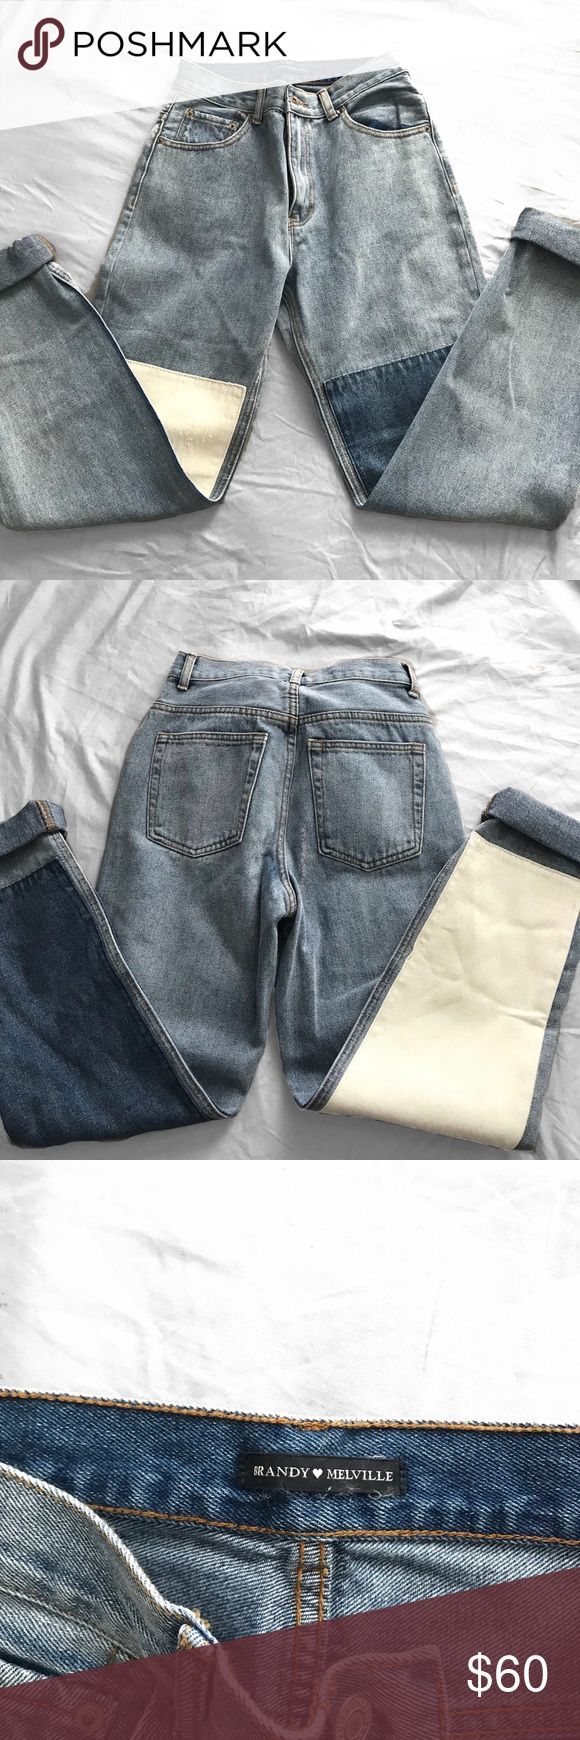 Brandy Melville Kenzo Denim Jeans RARE NWOT Brandy Melville Kenzo Denim Jeans!! These are a superrr rare pair of jeans and are no long sold in stores or online! They're a size small and according to Brandy should fit a 24-26 waist. There's a bit of a pilling/ripping effect on the white leg patch and a fold over on the blue leg patch but this is how the jeans came! it has nothing to do with them being damaged. Like i said these jeans are really hard to find so get yours while you still can…